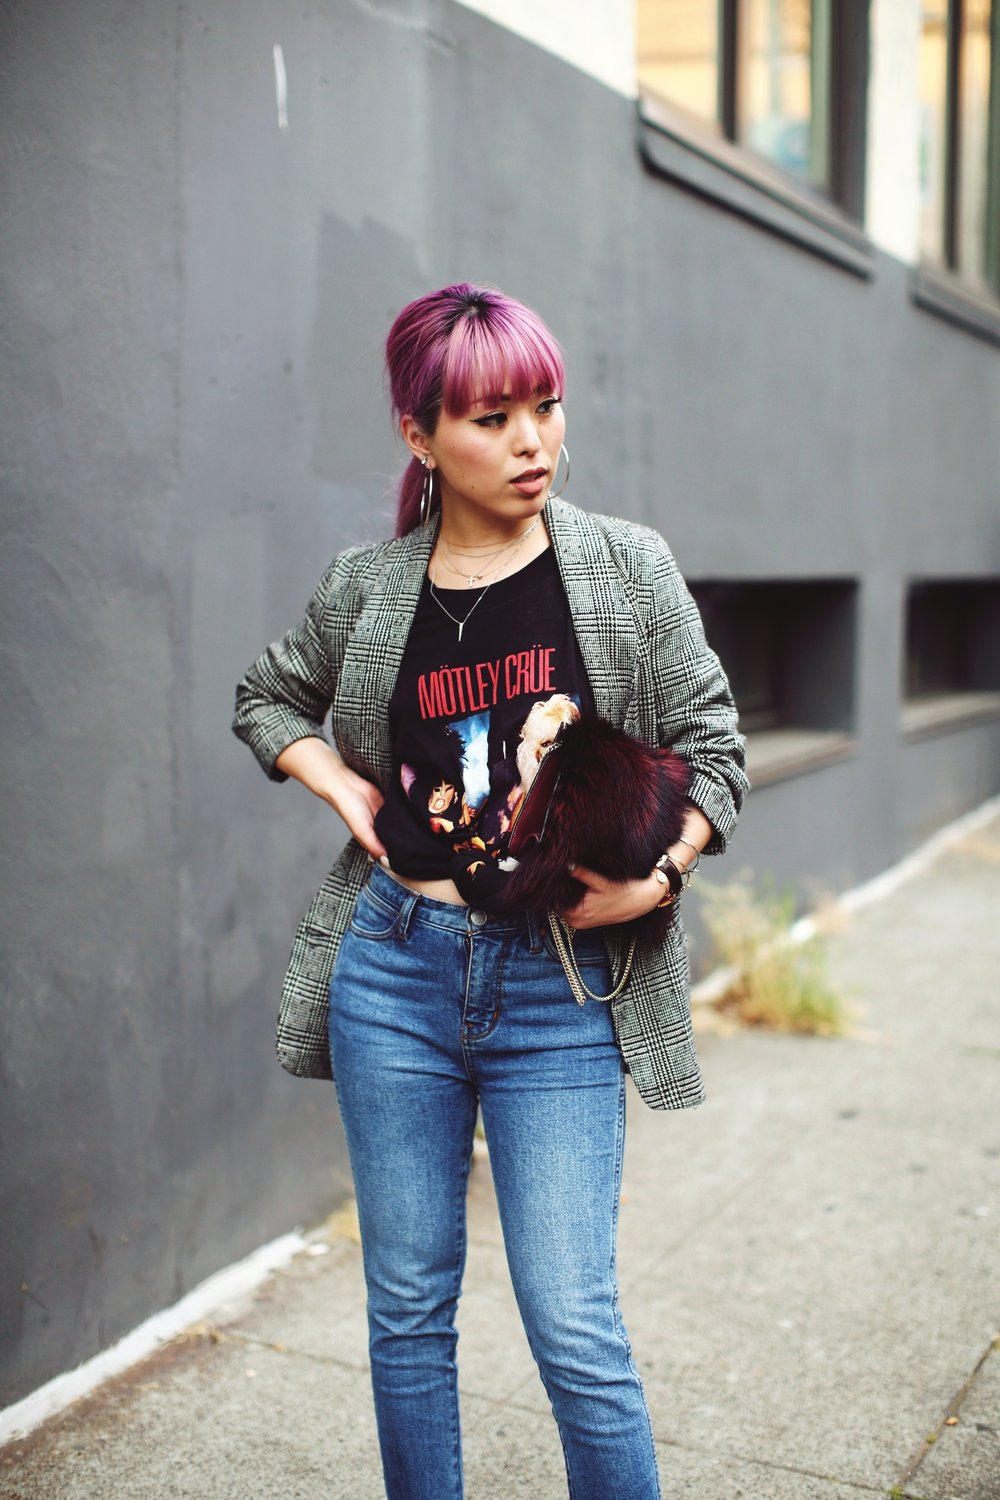 Nordstrom Plaid Blazer_Vintage Rockband Tee_Free People High Waisted Jeans_Daniel Wellington Watch_ASOS Black Mules_DVF Fur Bag_Pink Hair_Aika's Love Closet_Seattle Fashion Style Blogger_Japanese 5